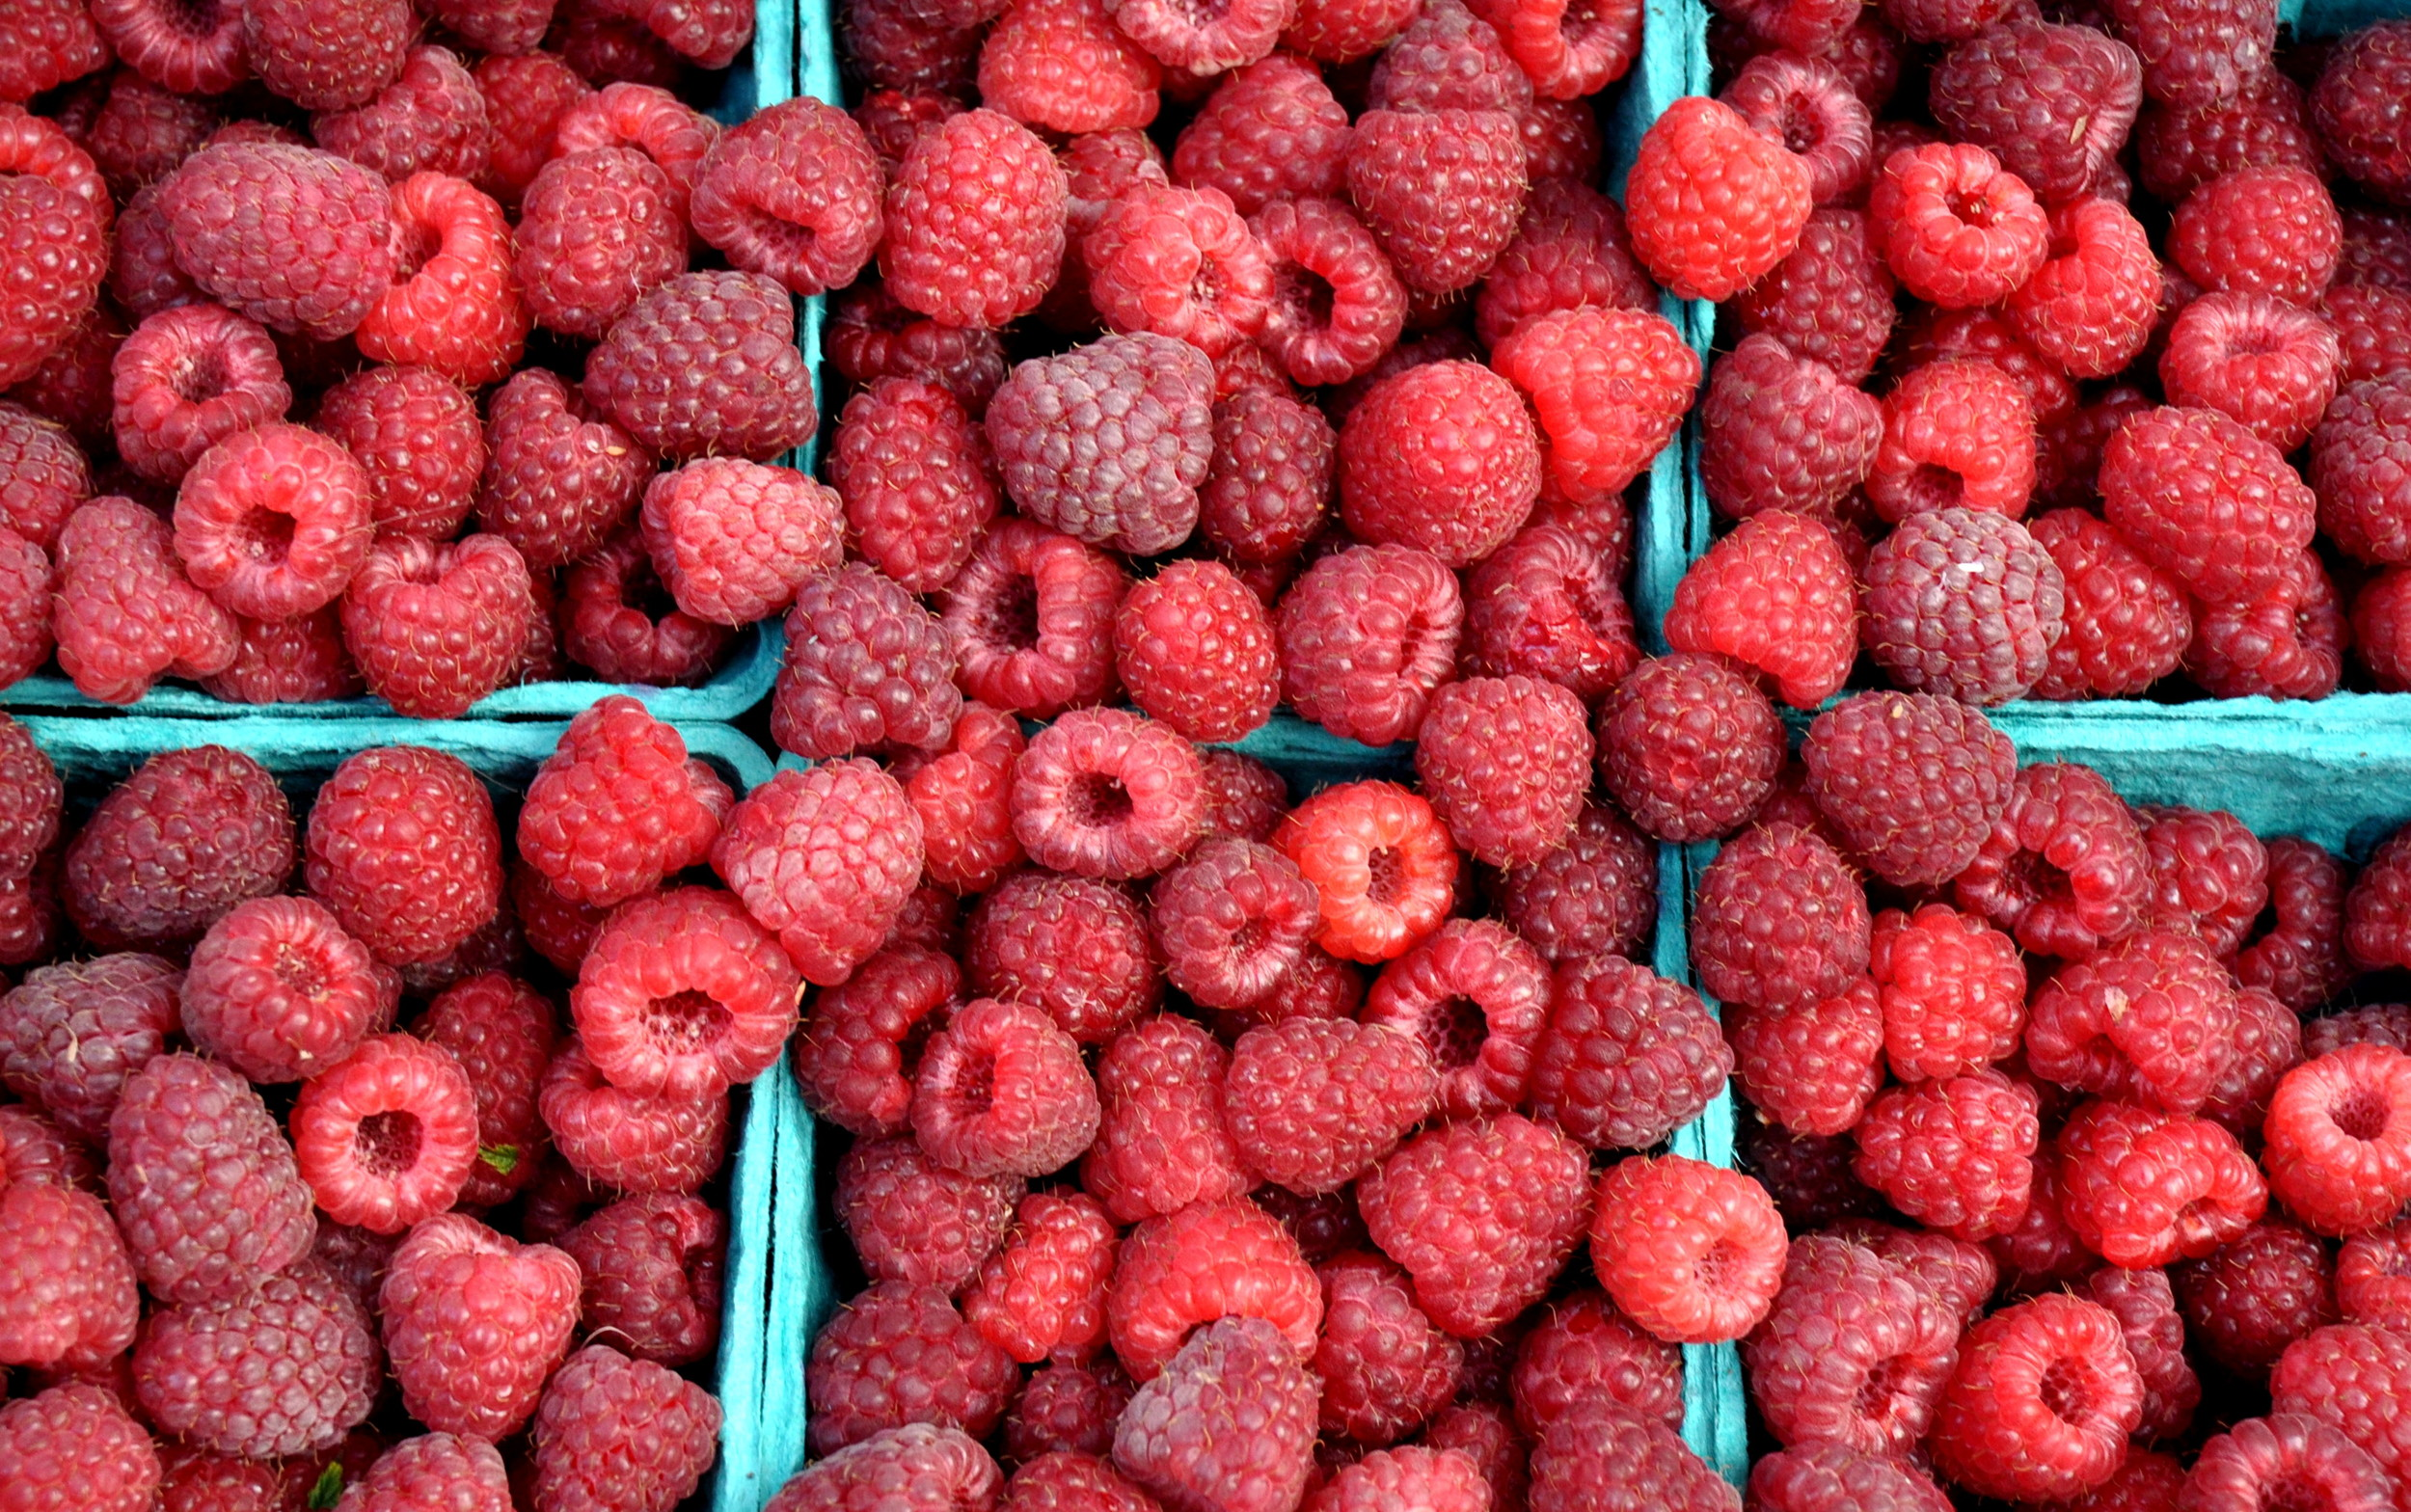 Organic raspberries from Gaia's Harmony Farm. Copyright Zachary D. Lyons.